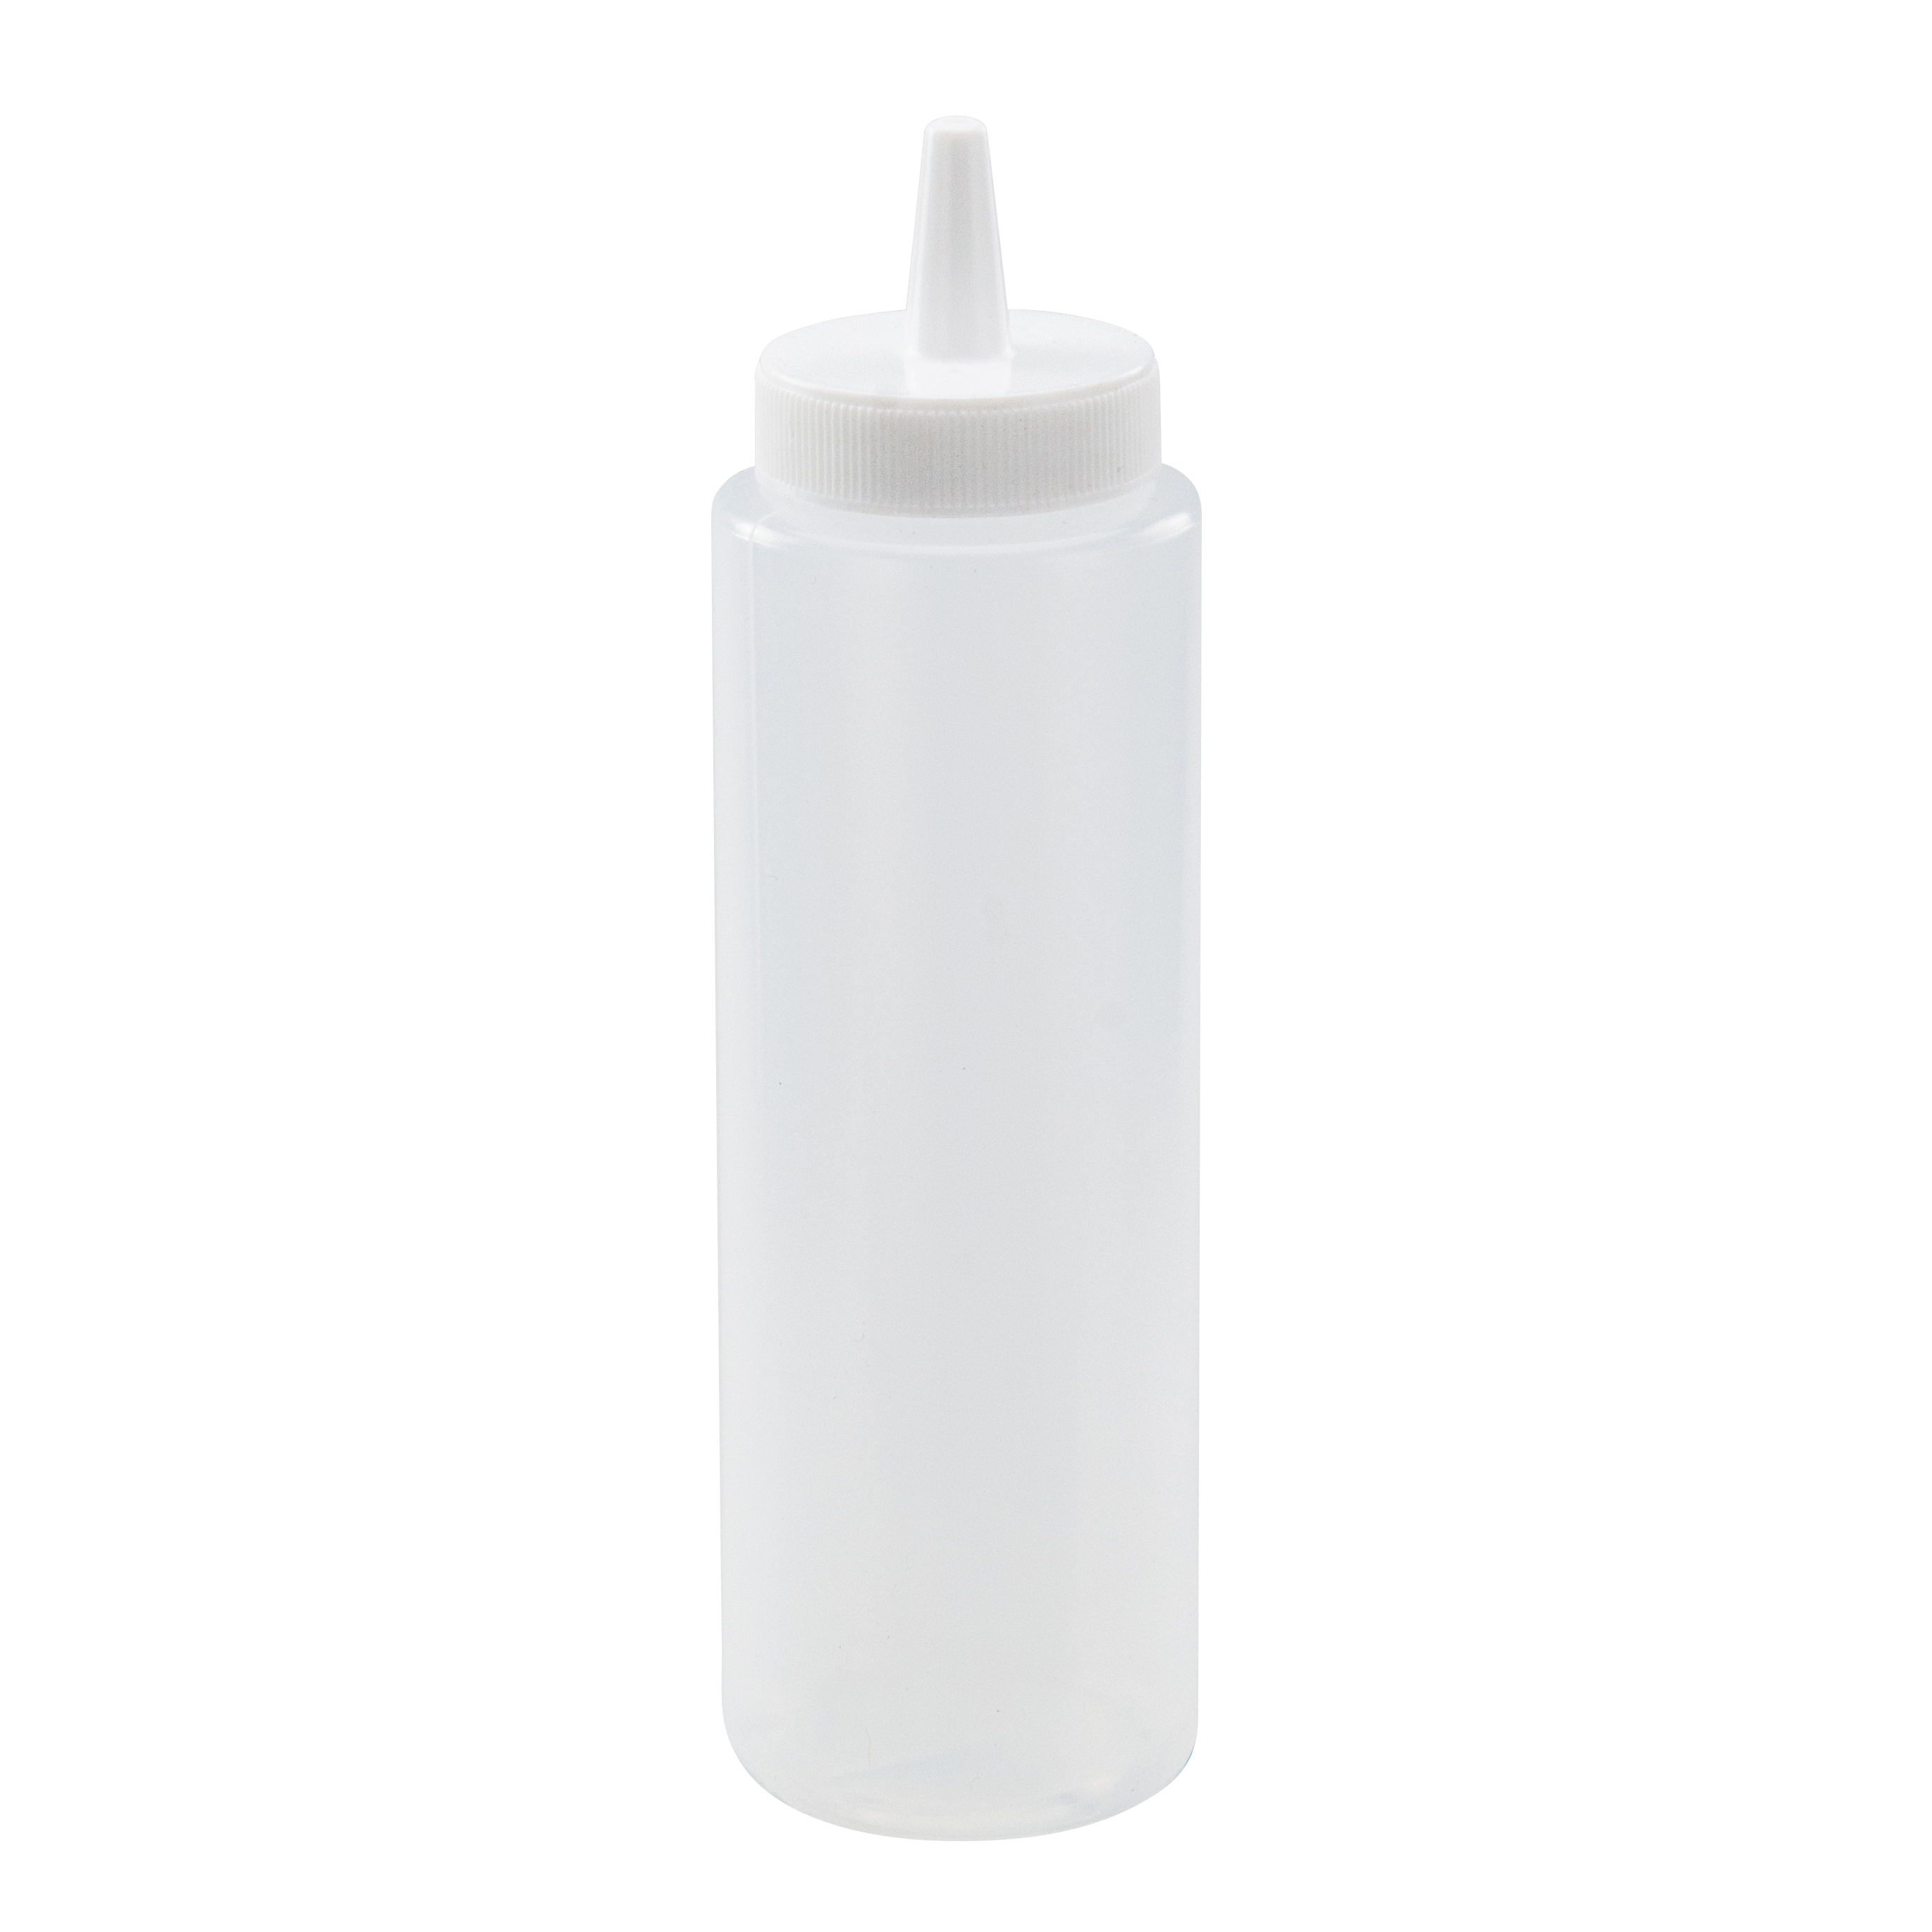 Winco PSB-08C squeeze bottle